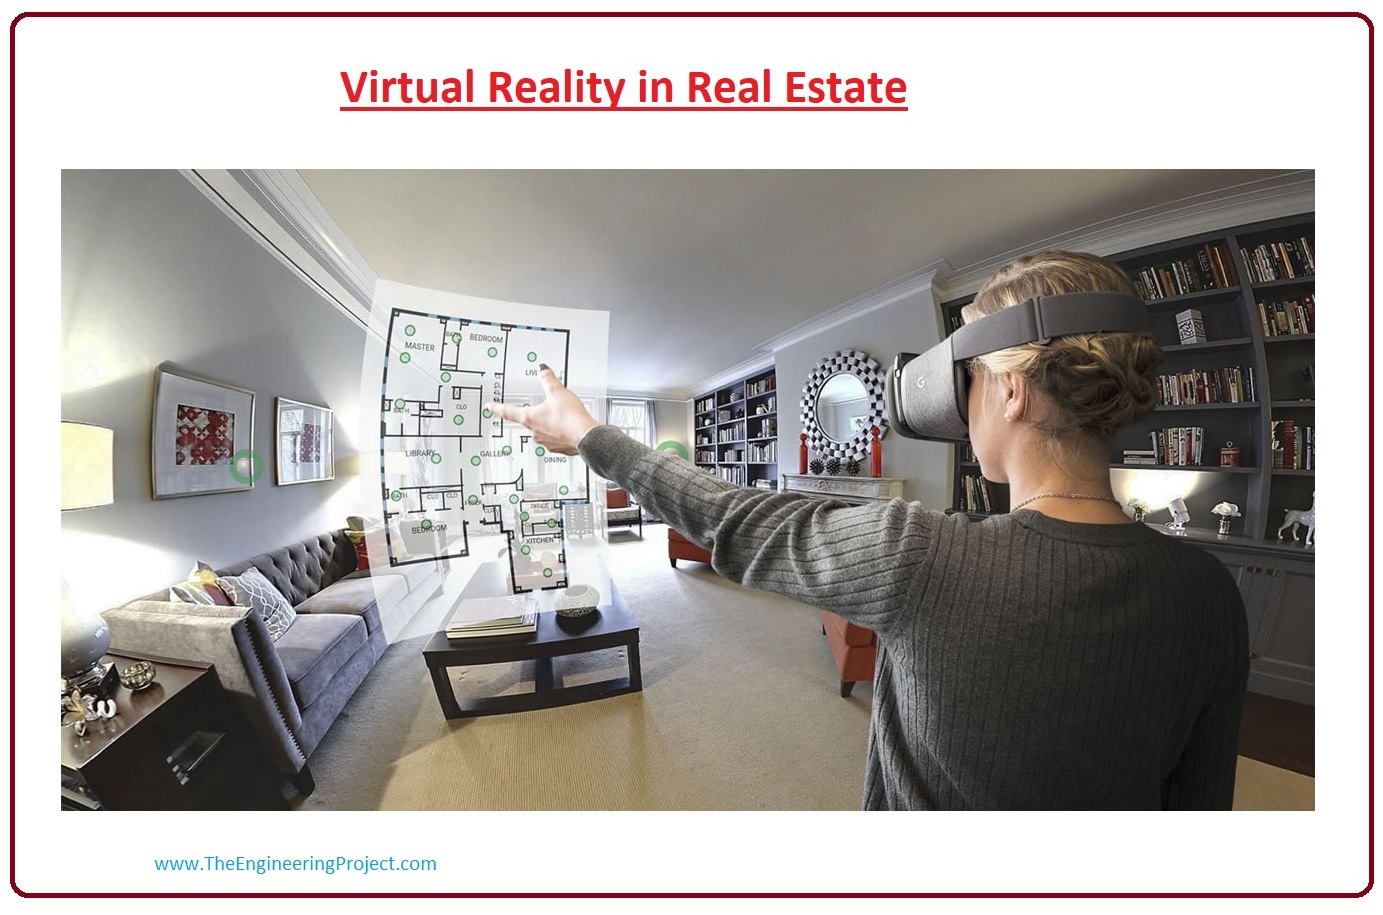 How Virtual Reality (VR) Works, How Virtual Reality (VR) Works, Virtual Reality in Real Estate, Virtual Reality in Construction, How to Use VR Headset in Construction